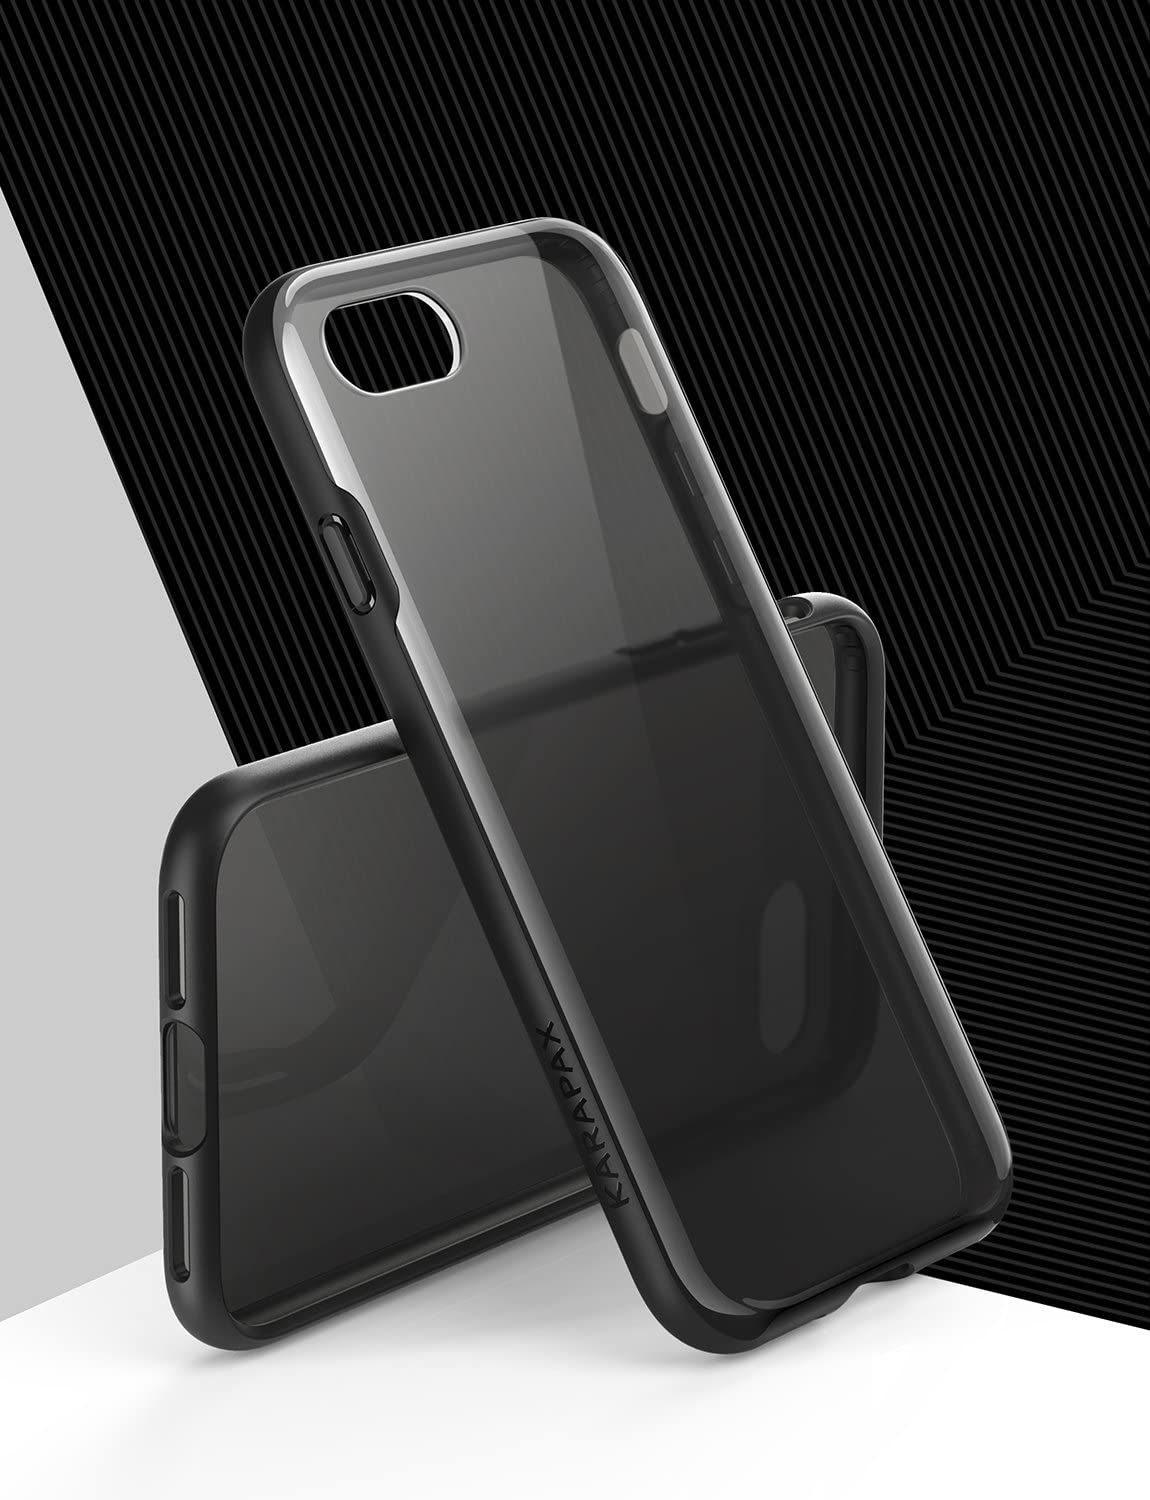 Slim Fit // iPhone 7 iPhone 7 Case for Apple 4.7 in iPhone 8 Semi-Transparent Hard Back and Soft Bumper Anker iPhone 8 Case - Black Support Wireless Charging KARAPAX Ice Case 2017 2016